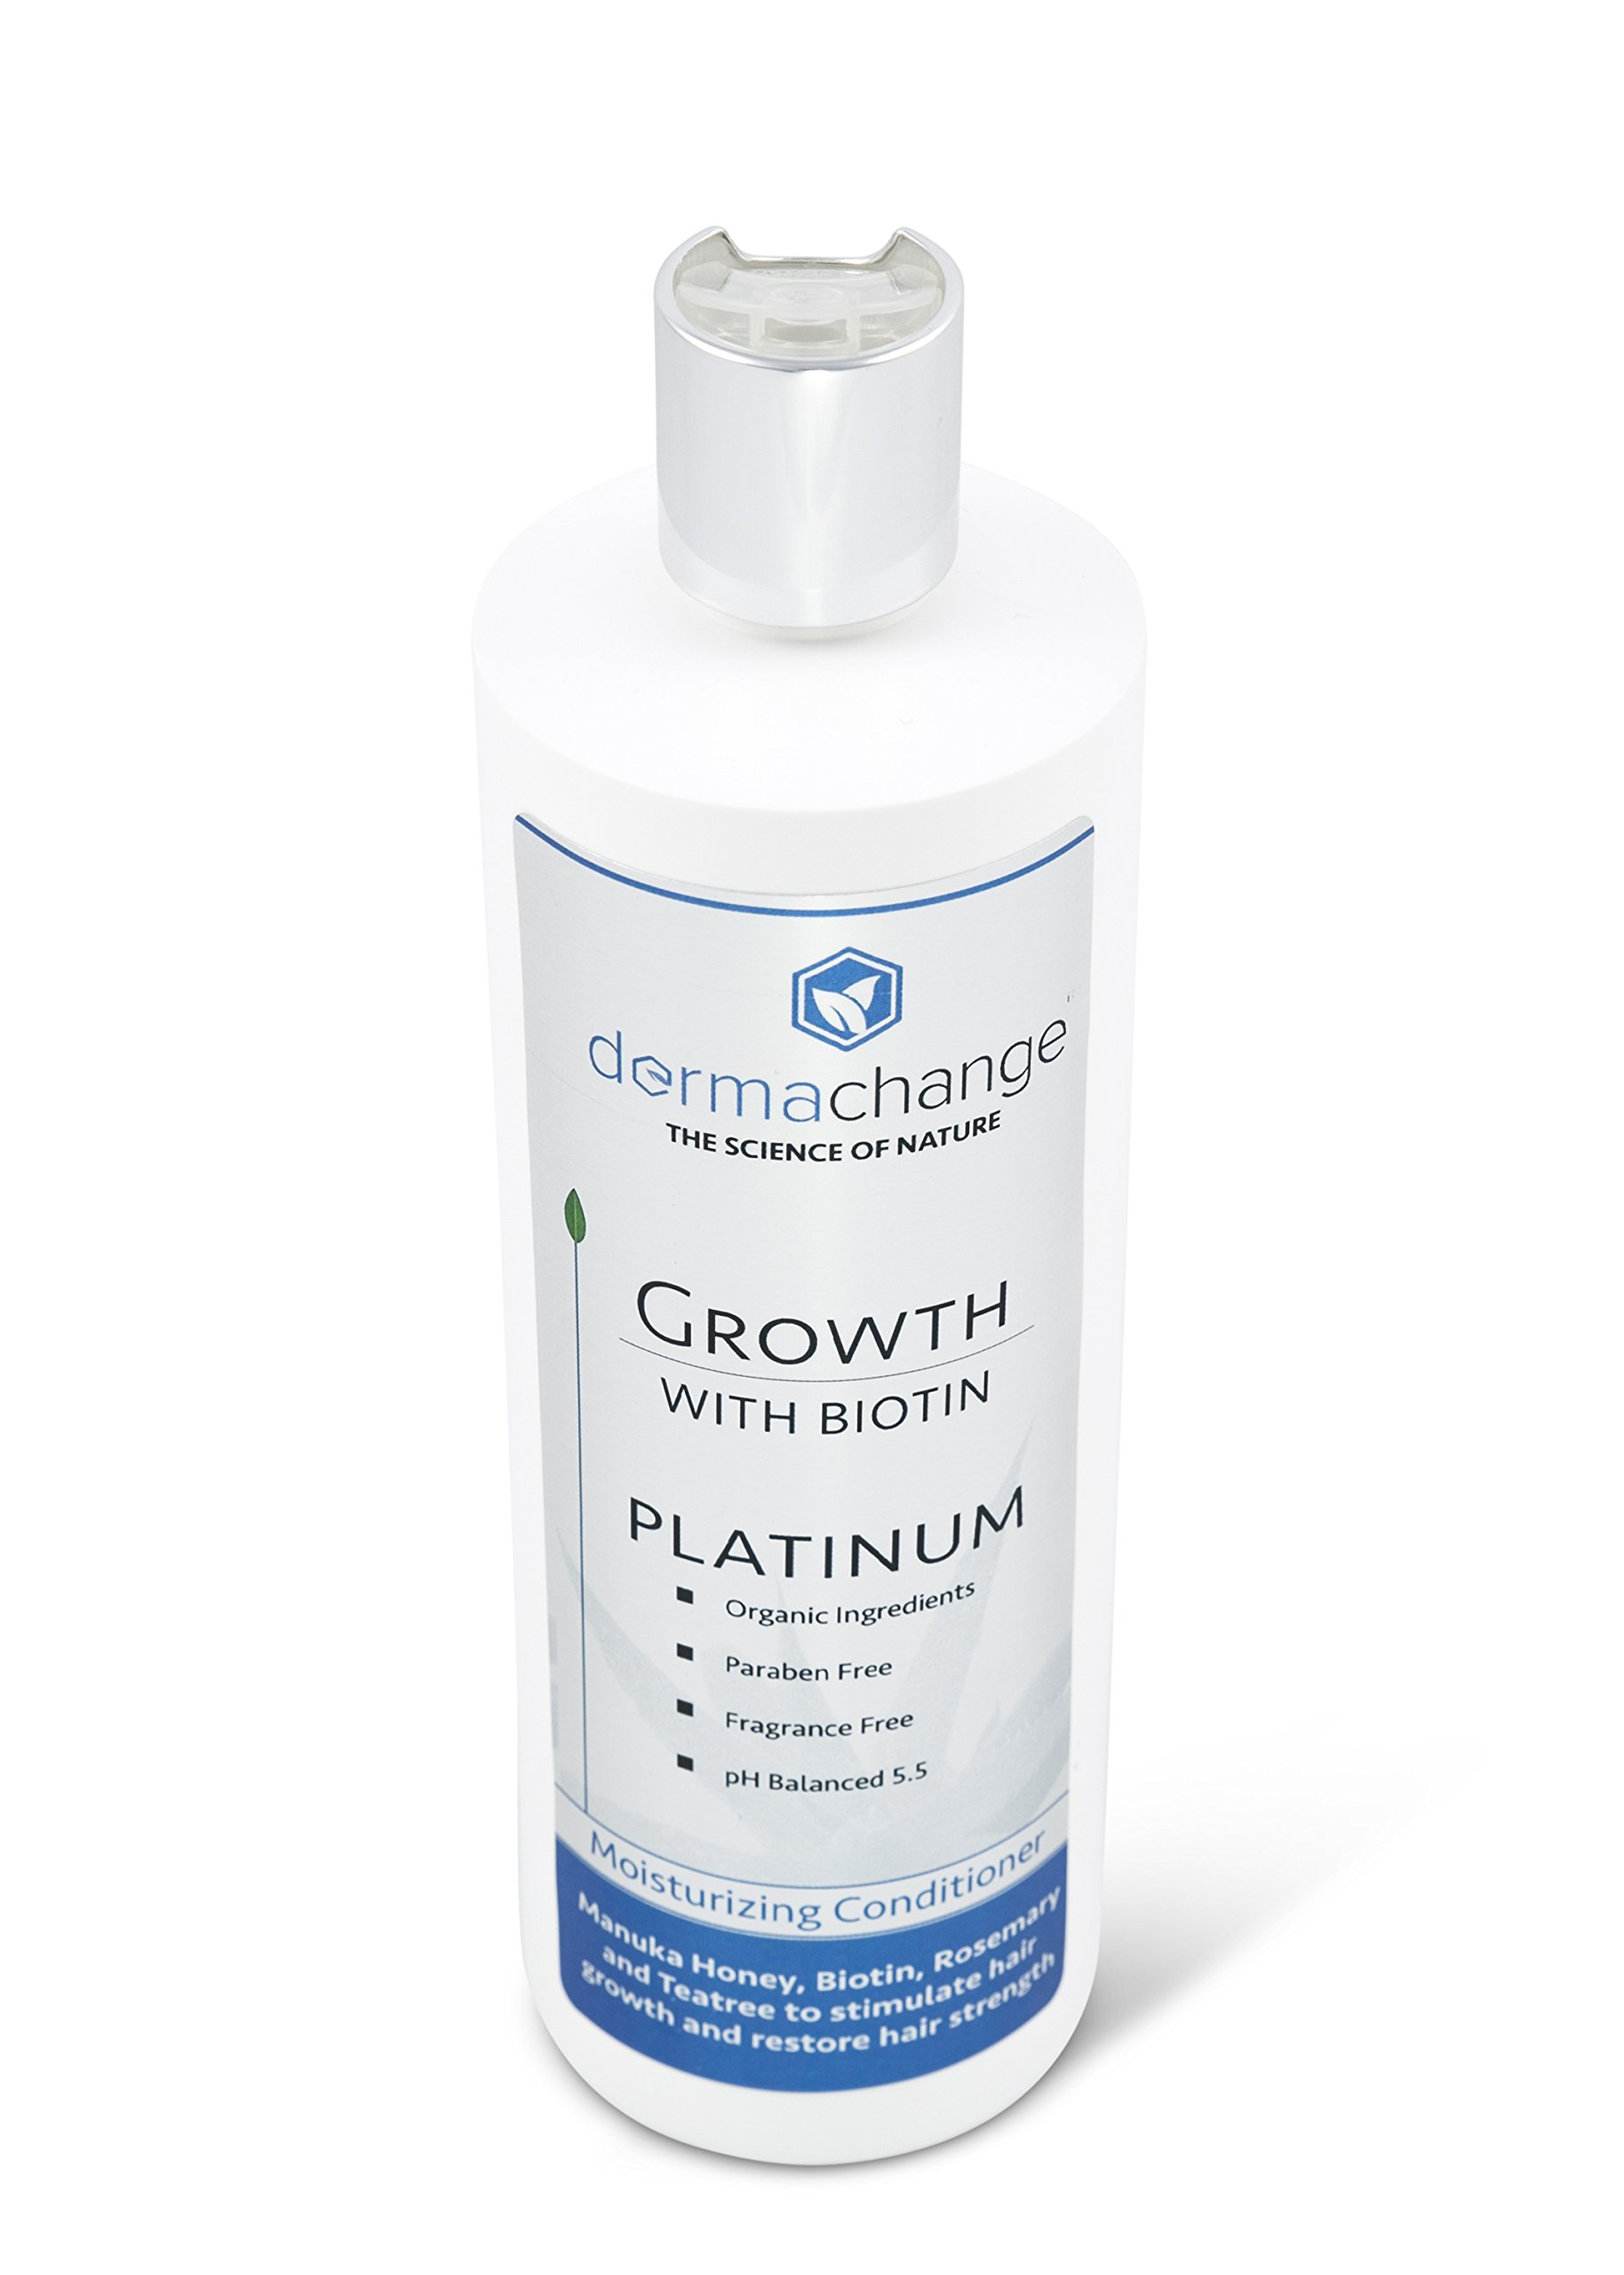 DermaChange Platinum Hair Growth Moisturizing Conditioner - With Argan Oil, Biotin & Tea Tree Extract - Supports Hair Regrowth - Hair Loss Treatments (16 oz) - Made in USA by DermaChange (Image #2)